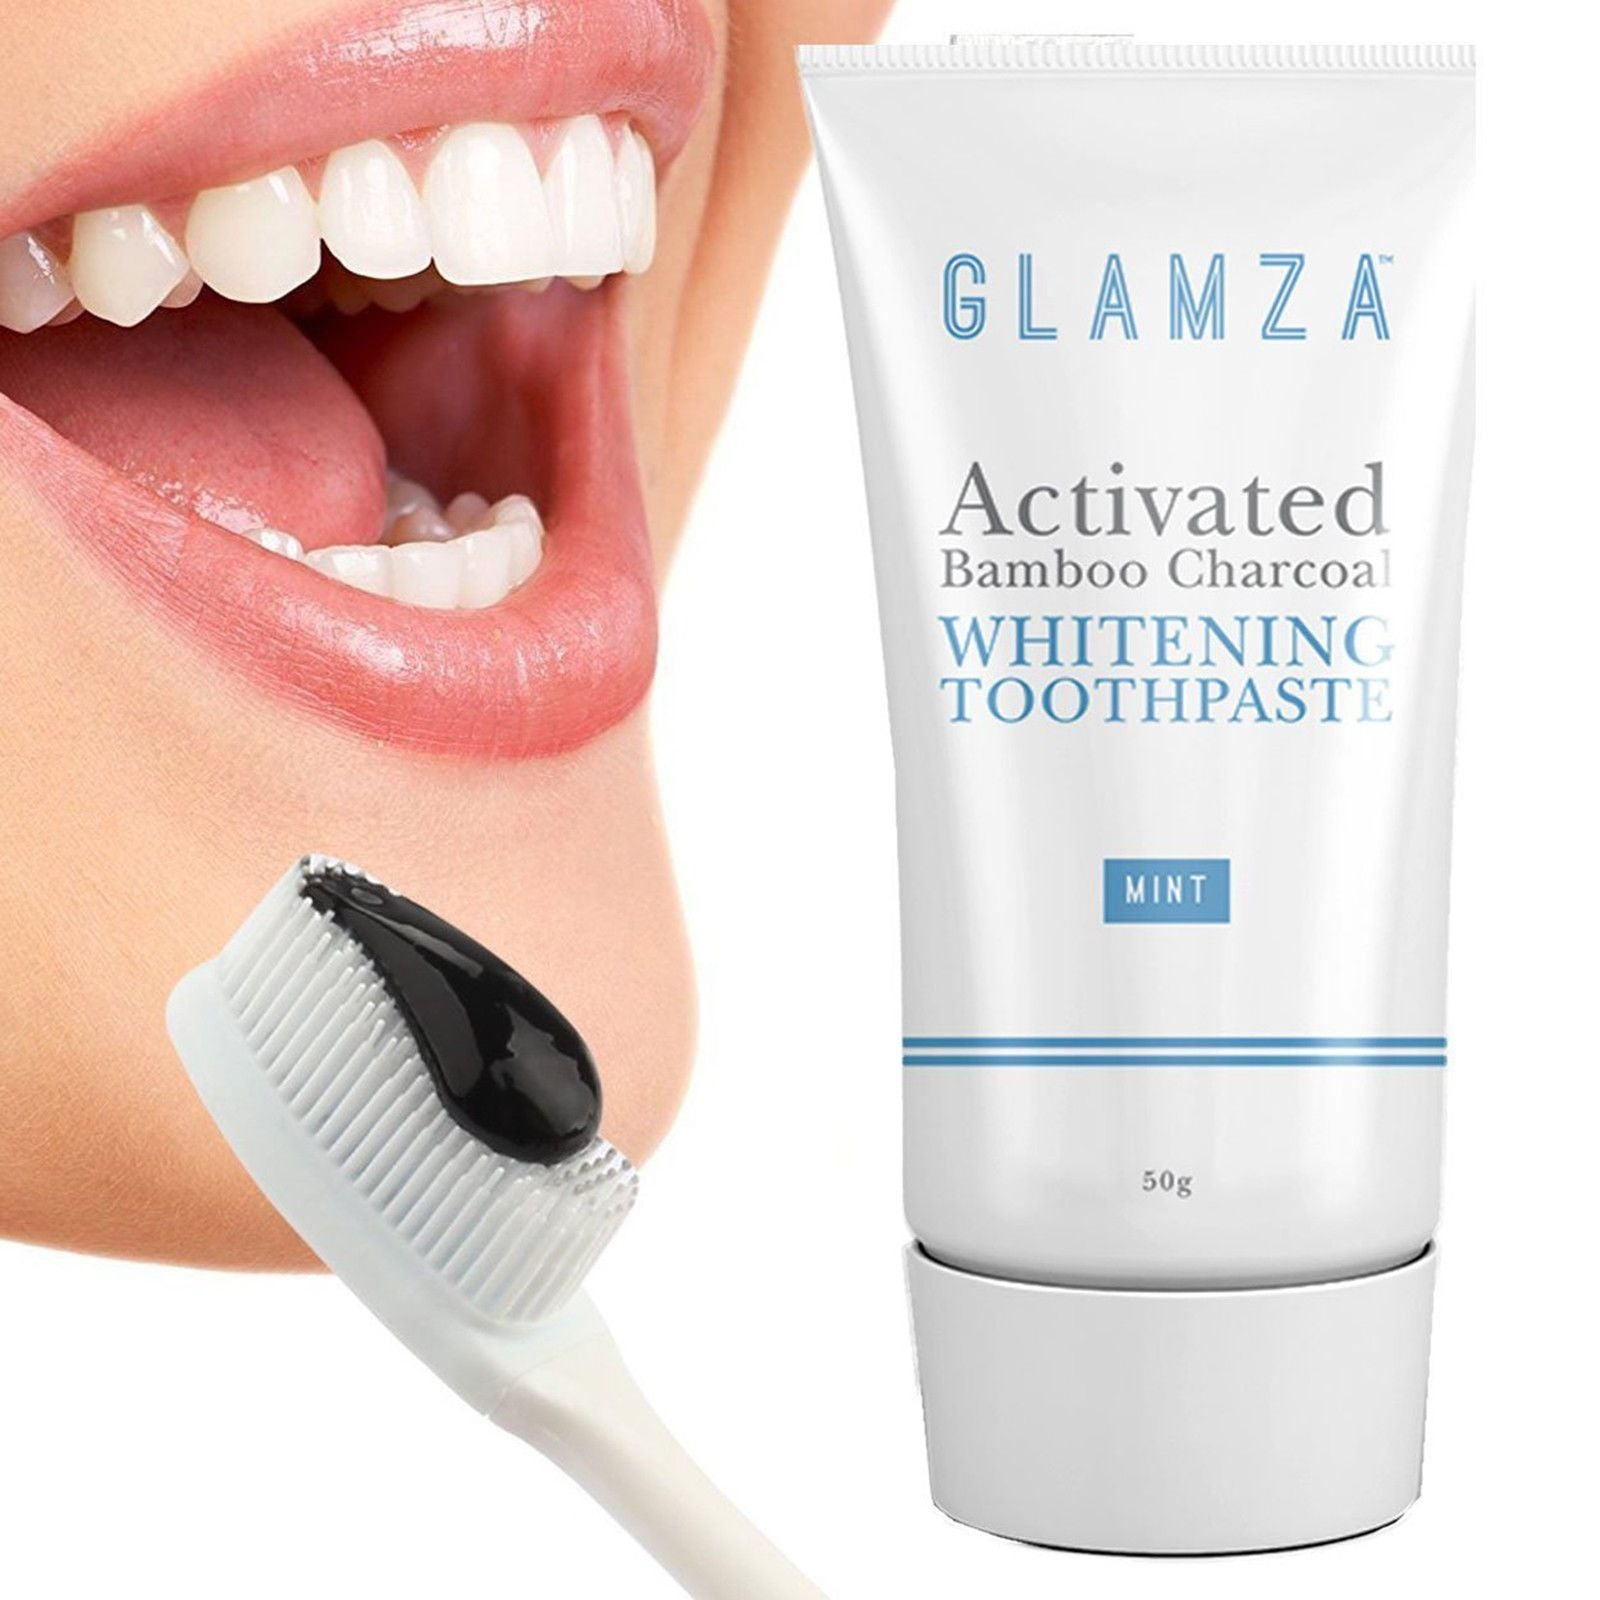 Glamza Activated Charcoal Toothpaste 50g by  Beauty Pop Cosmetics